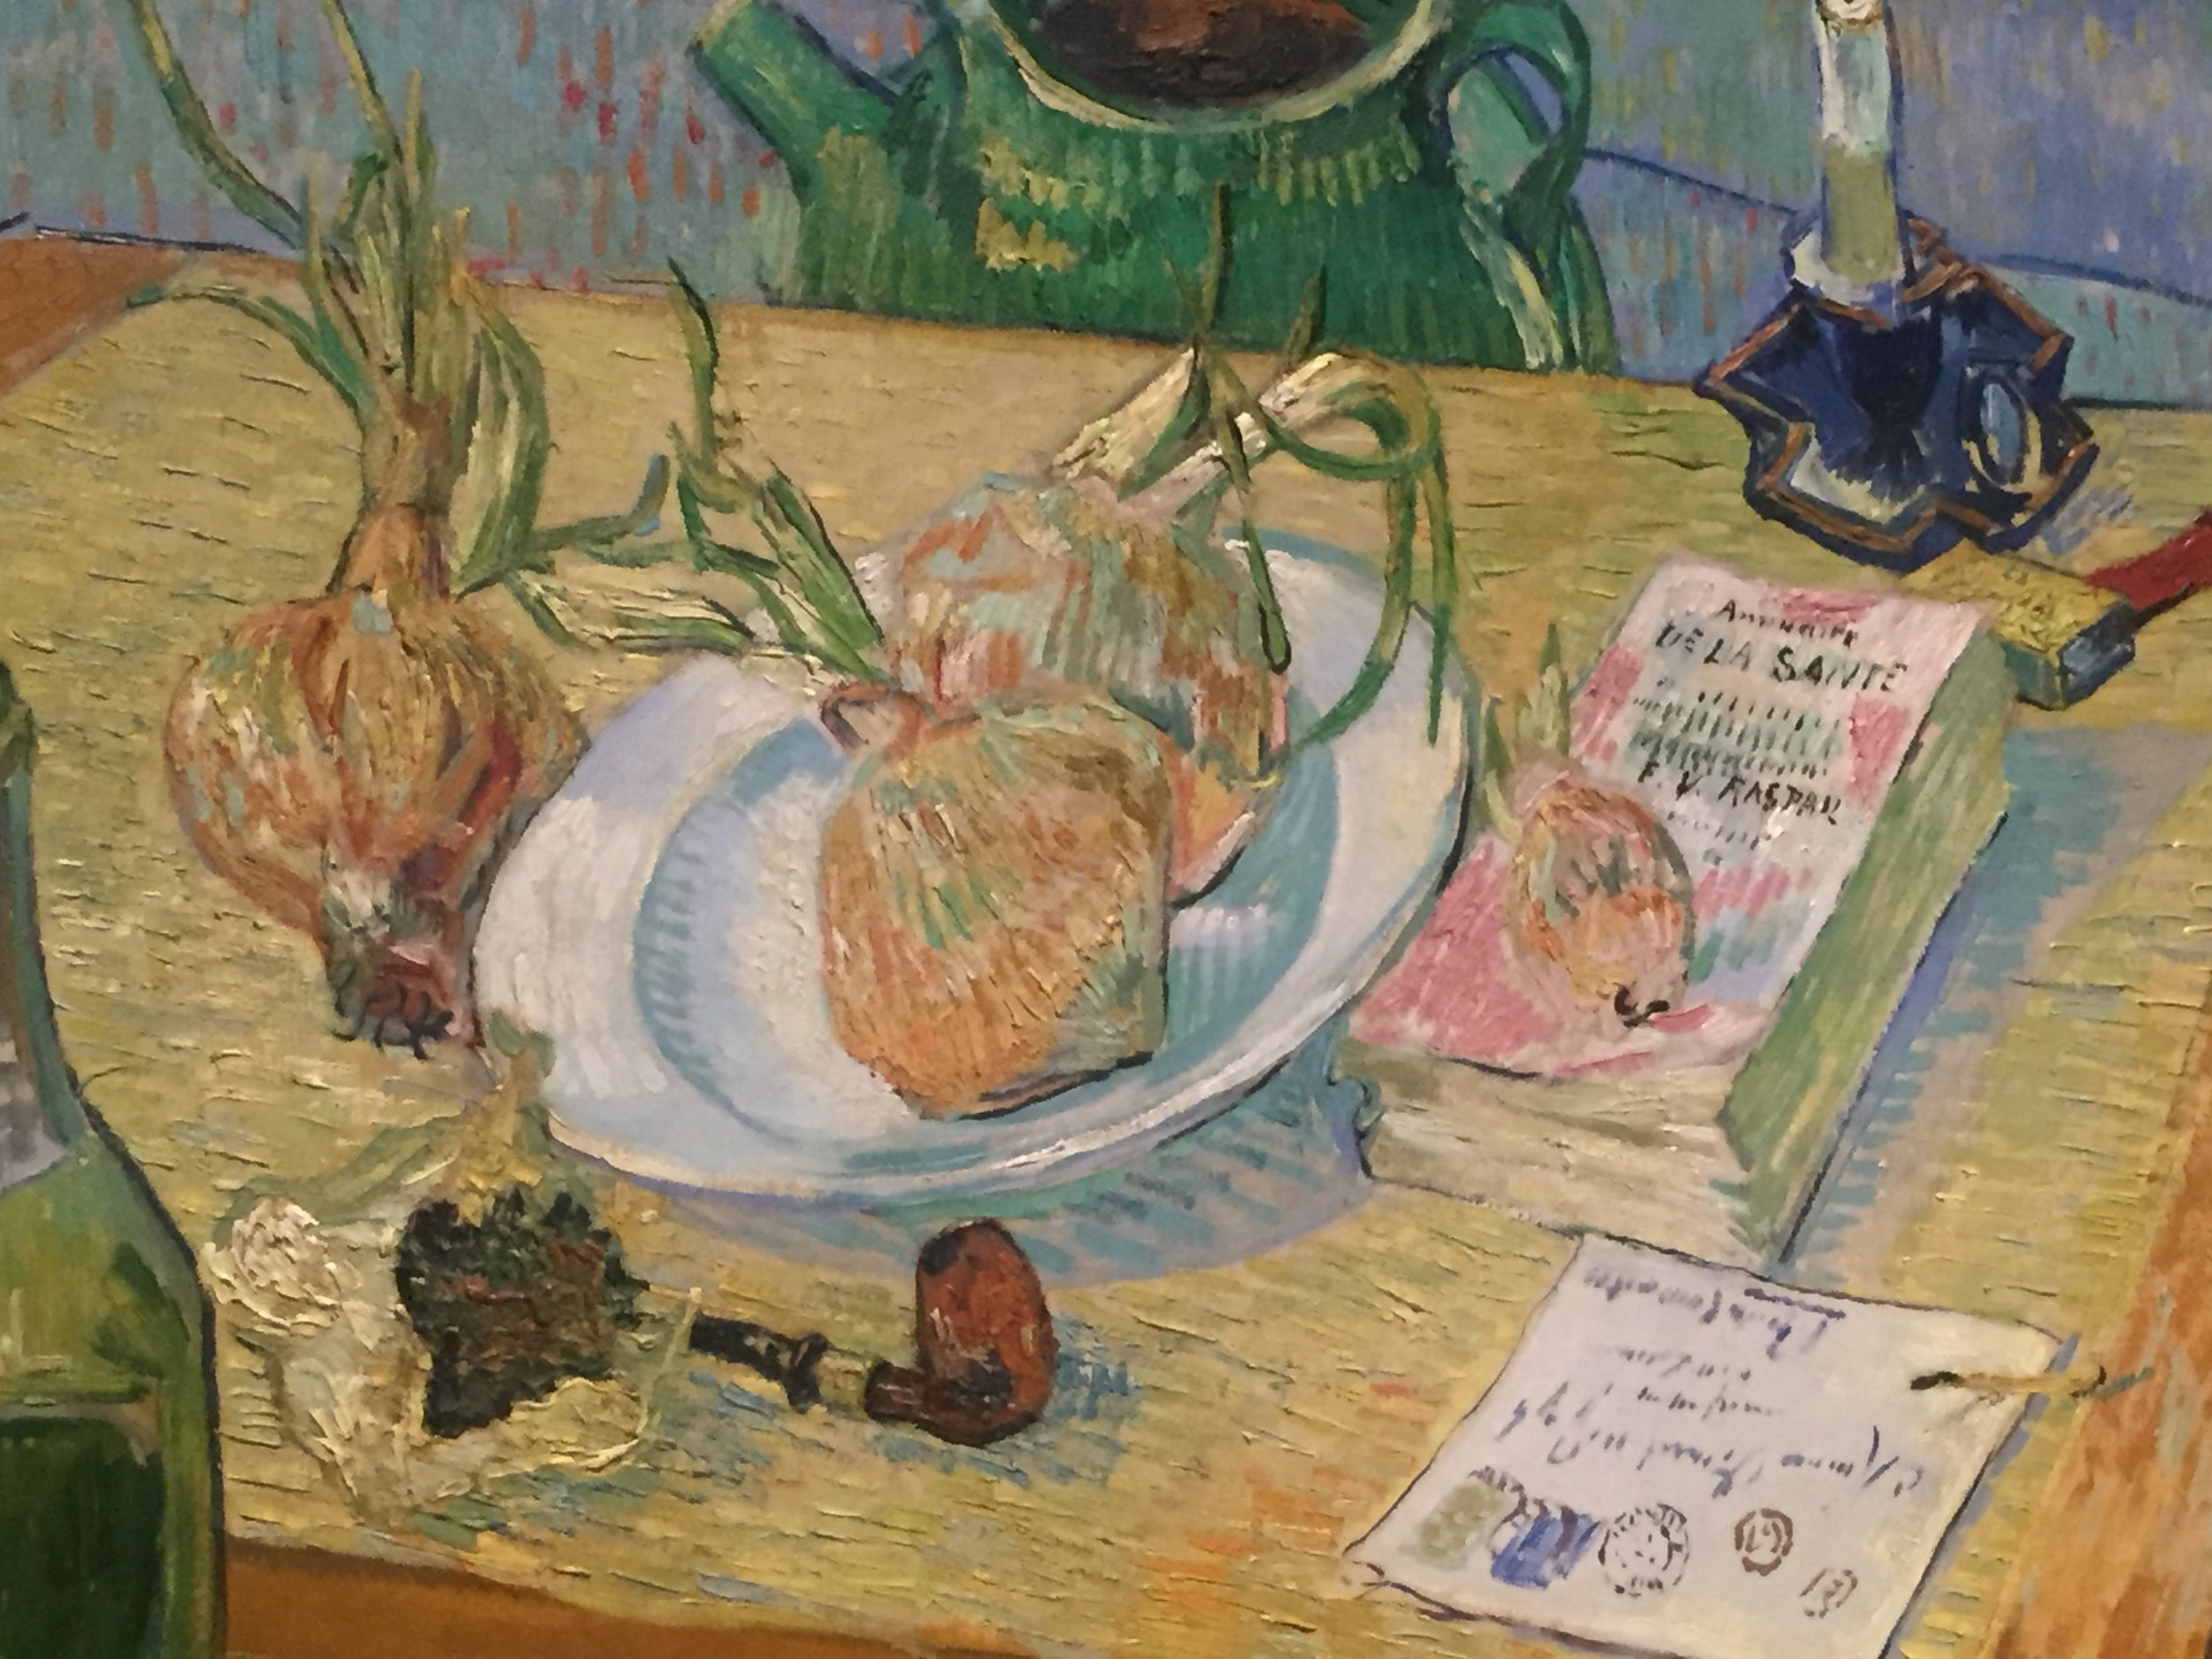 van gogh book letter and onions.JPG